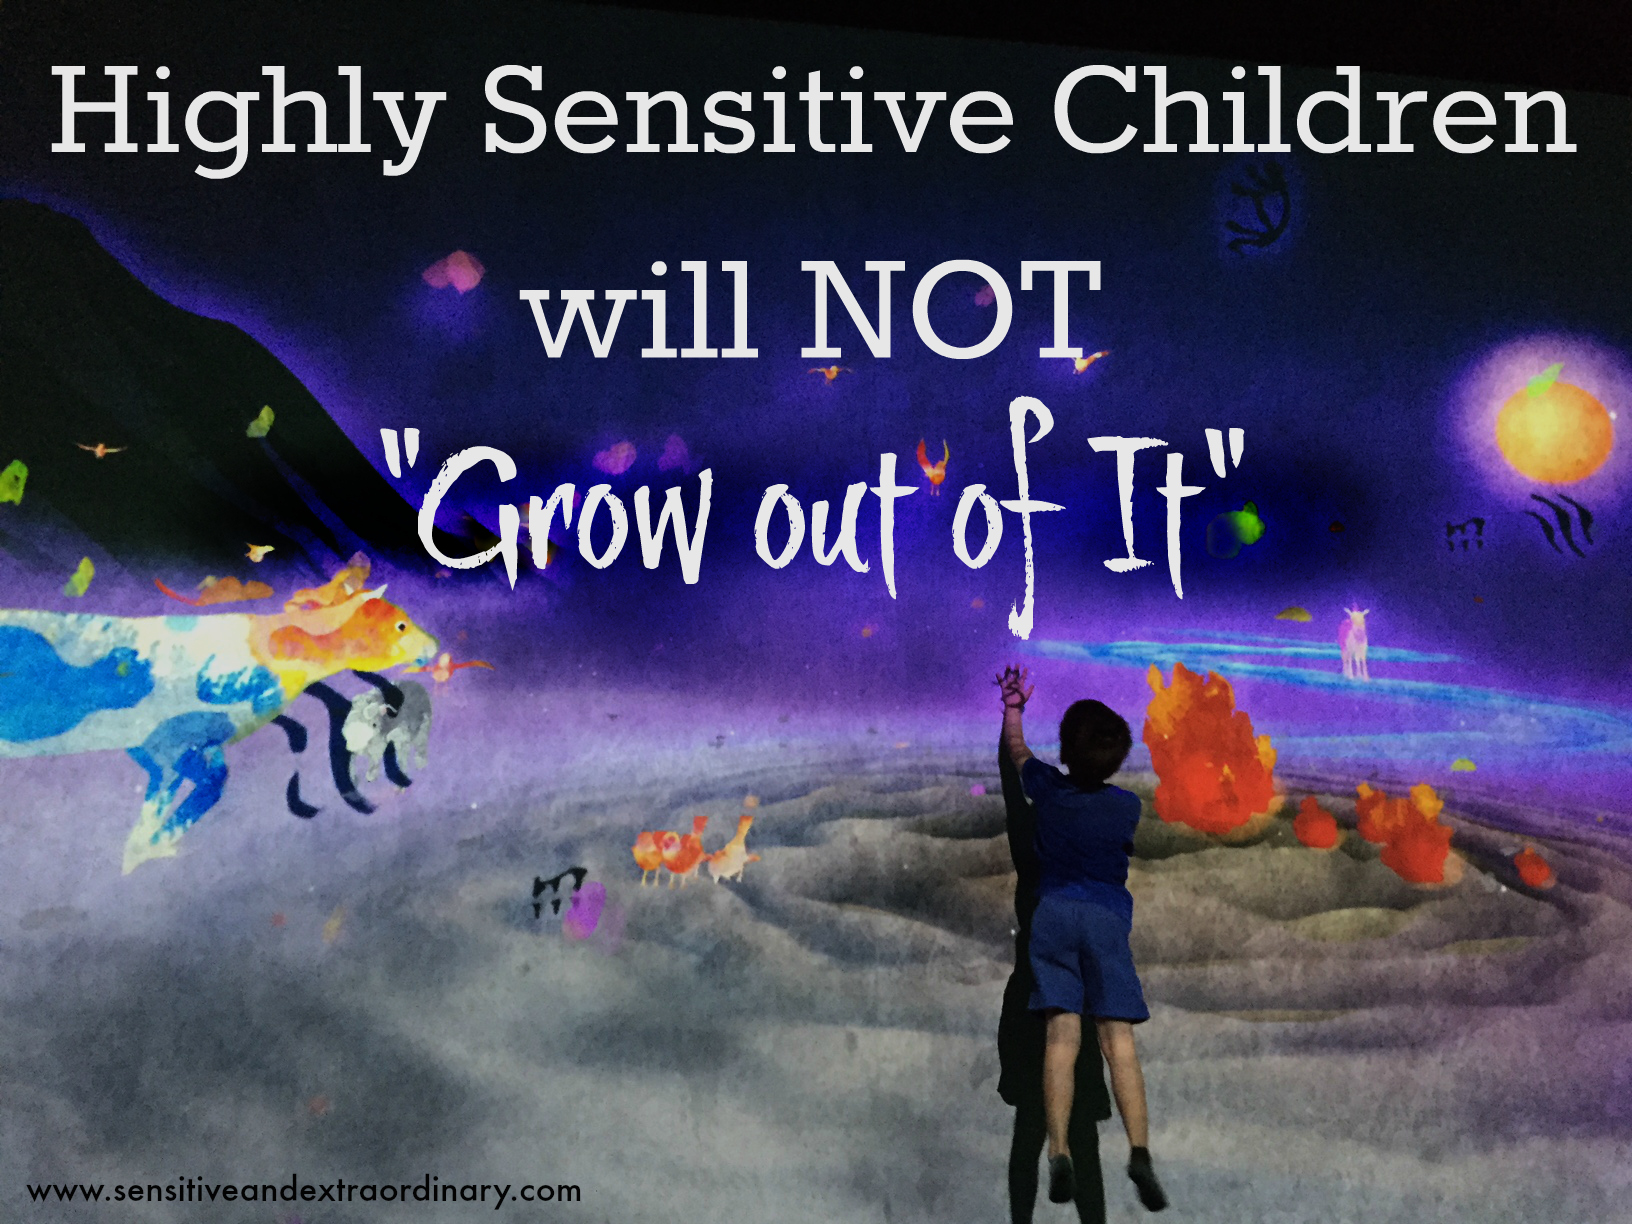 Highly Sensitive Children Will Not Grow out of It